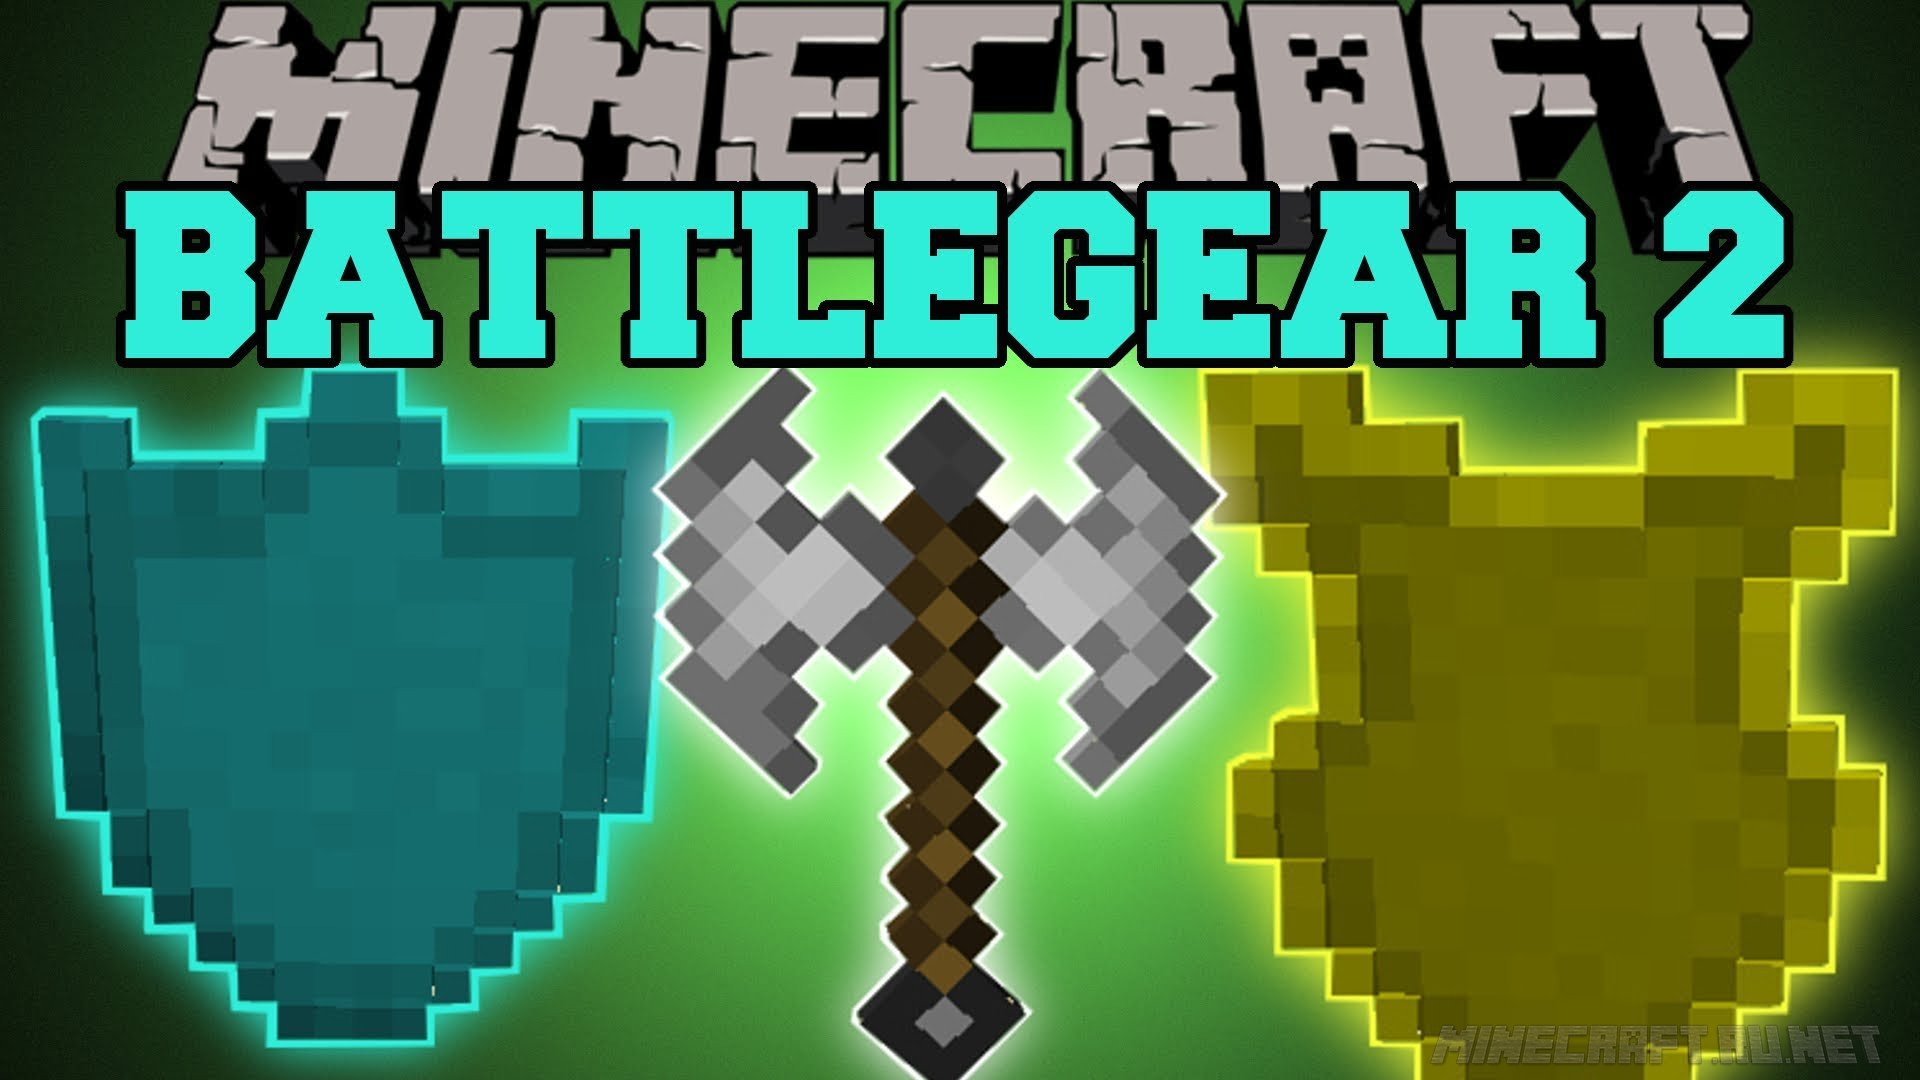 Minecraft Mine & Blade Battlegear 2 - Bullseye